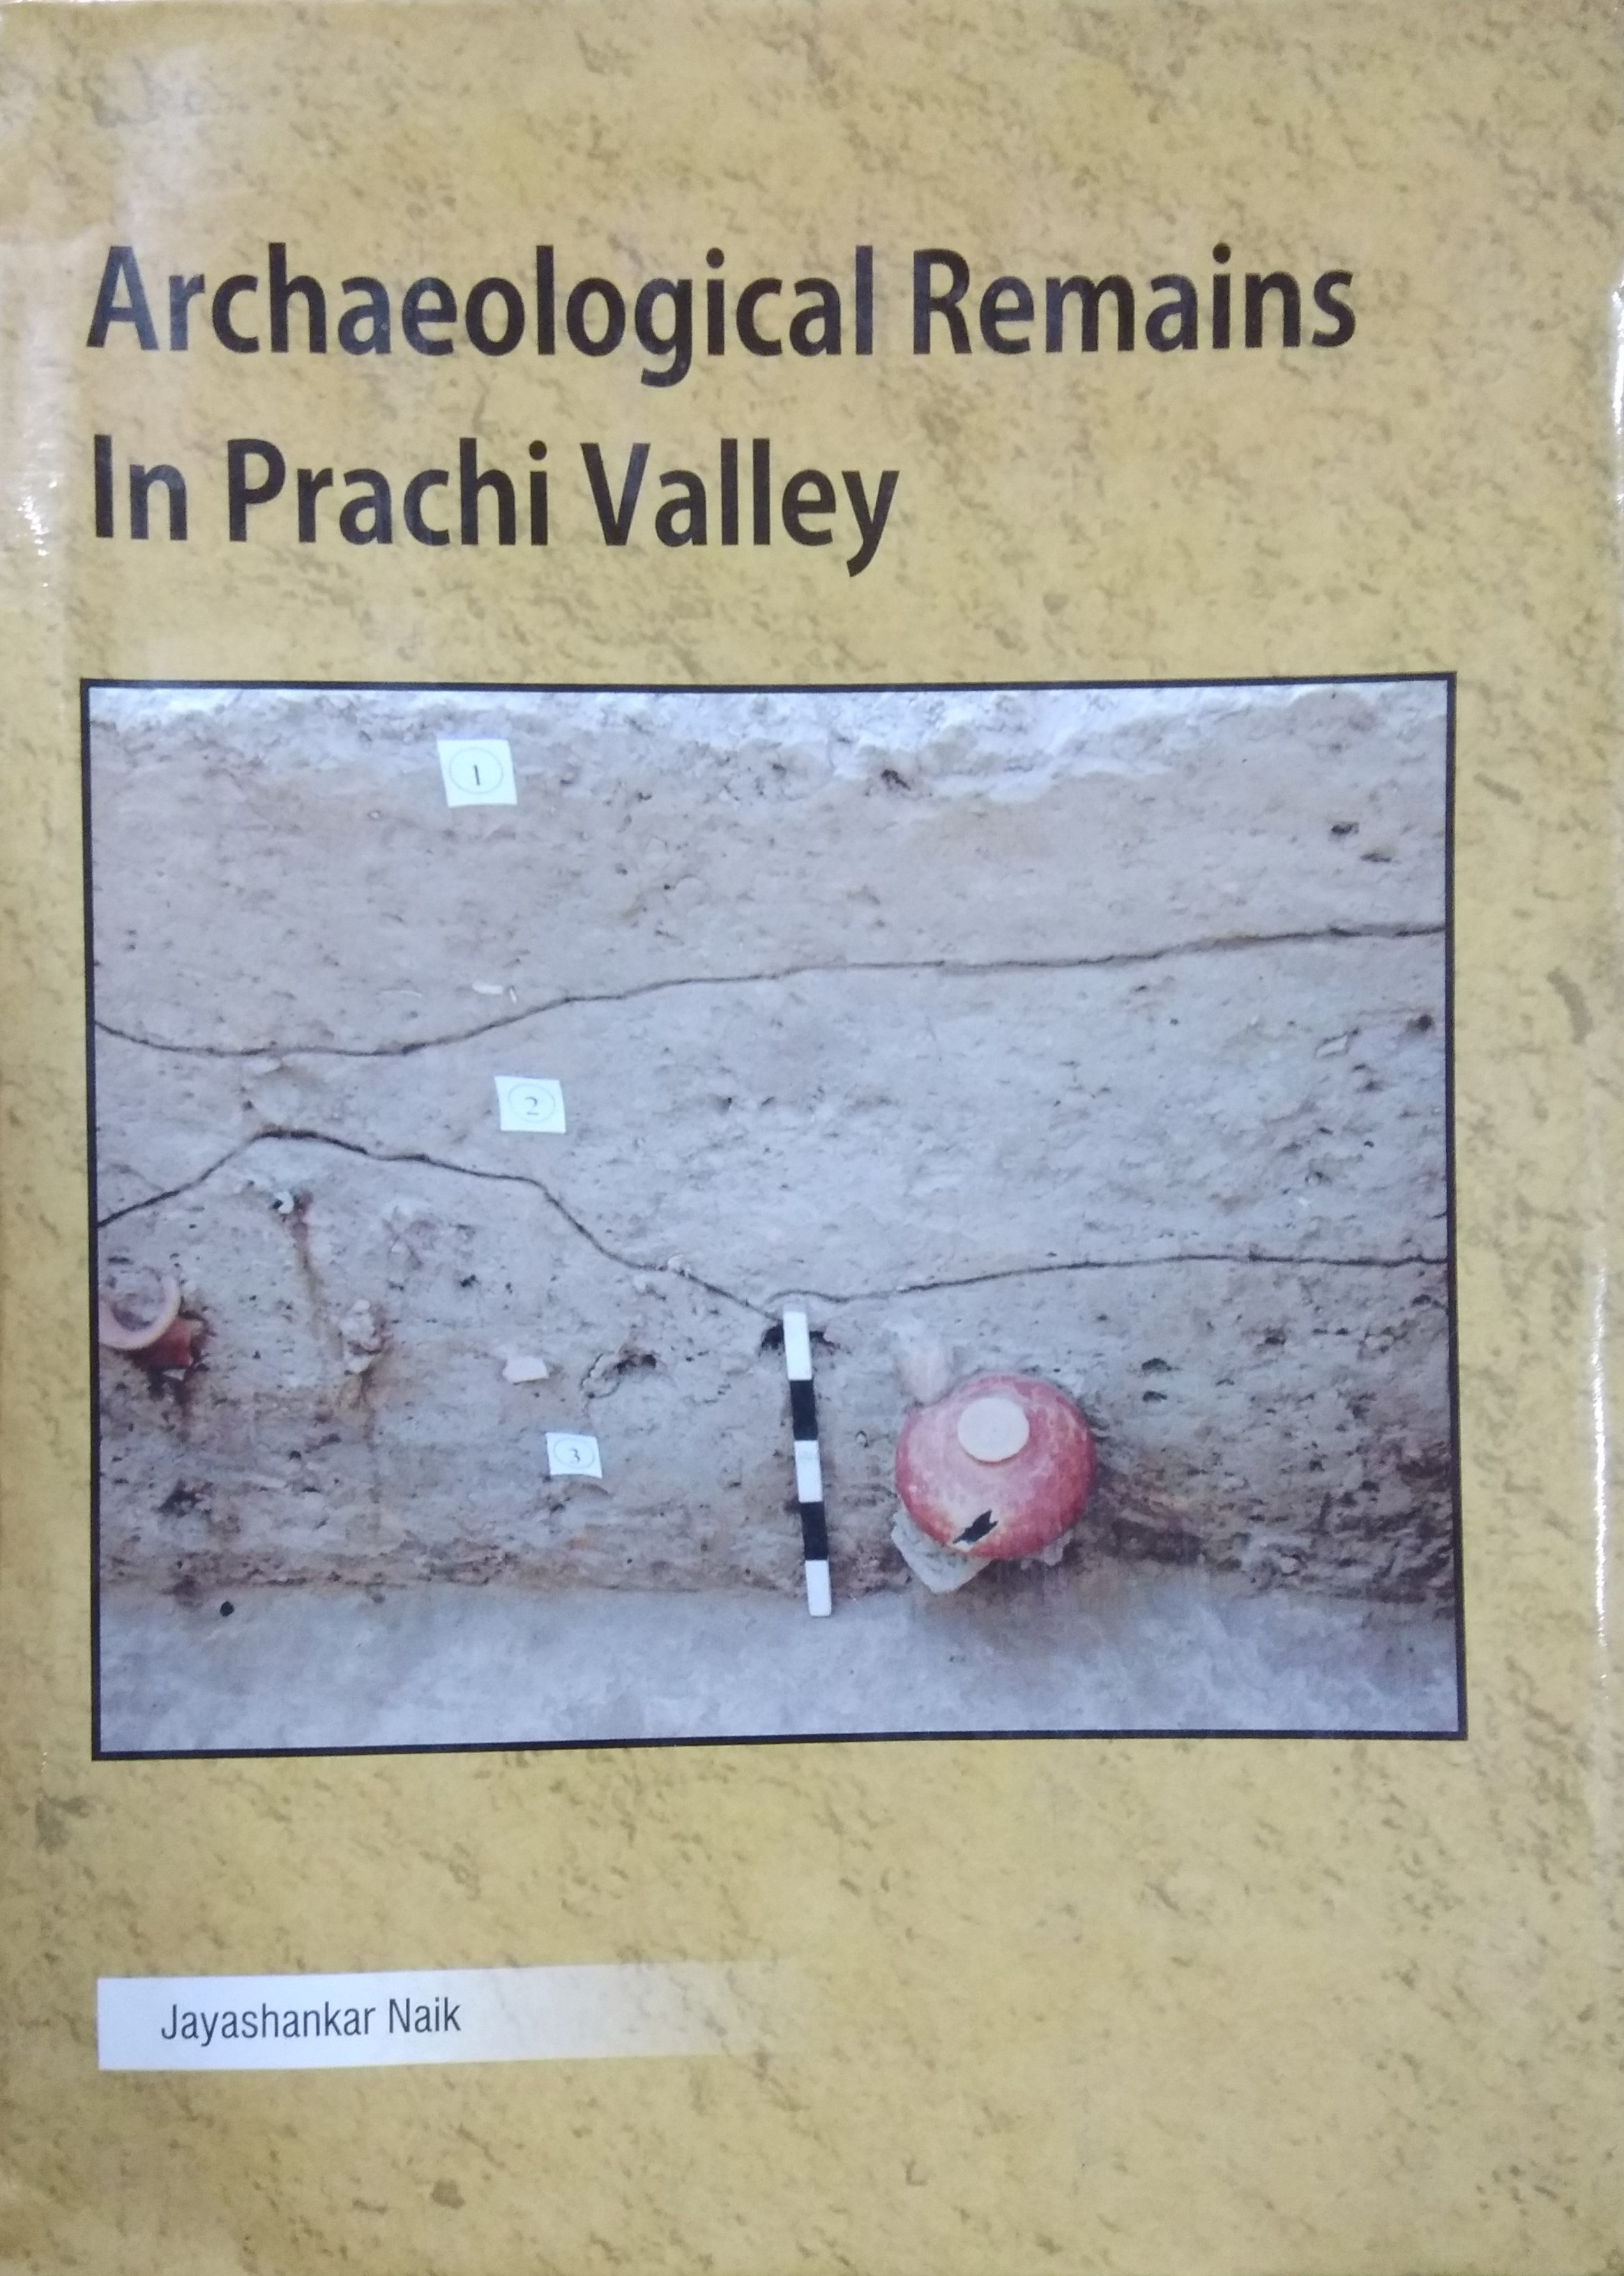 Archaeological Remains in Prachi Valley